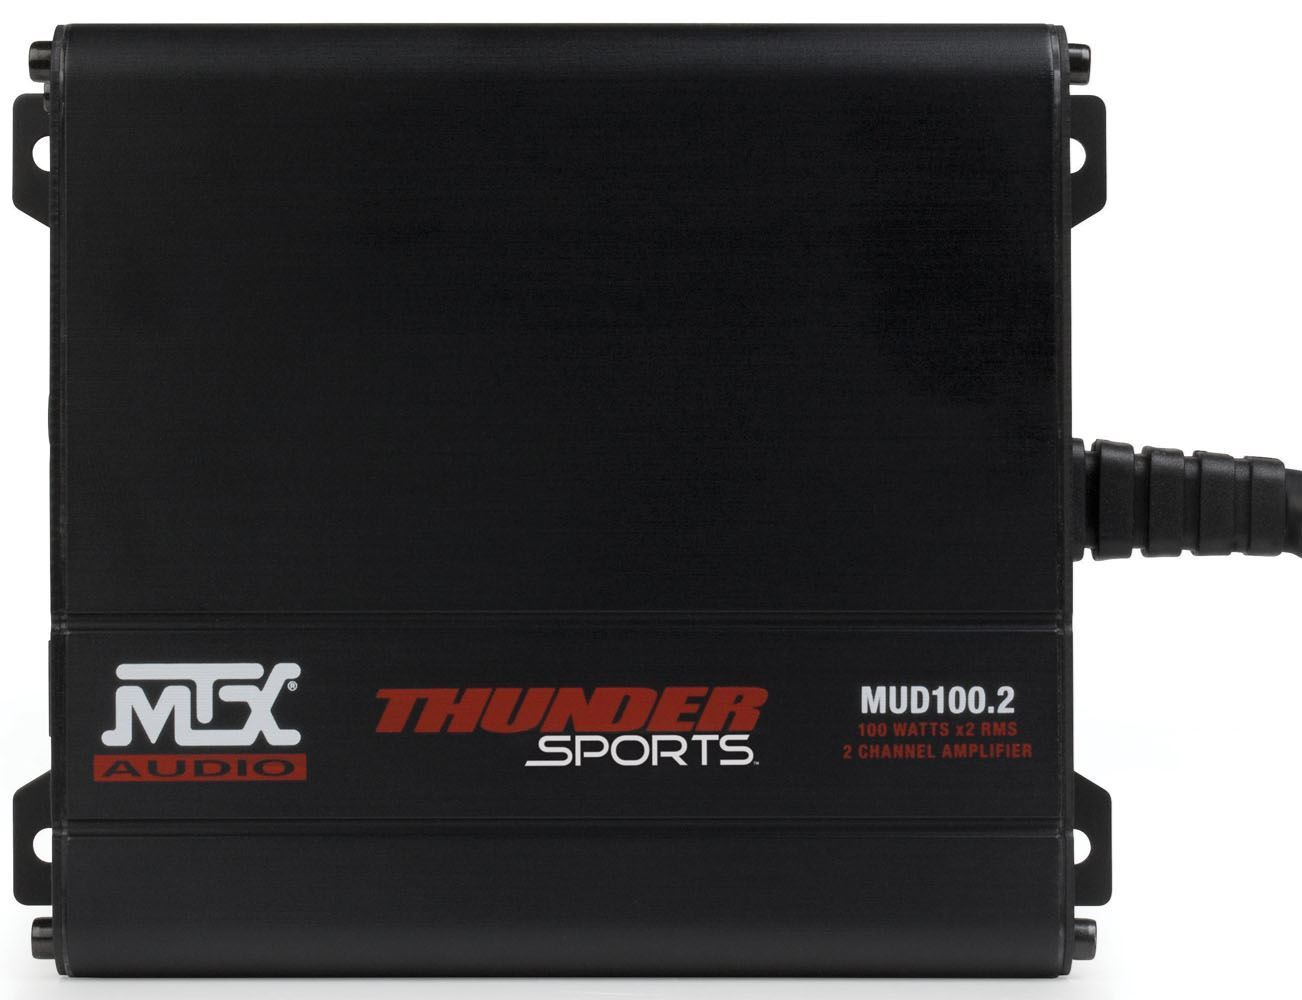 Mud Series 200 Watt Rms 2 Channel Full Range Cld All Weather Powersports Amplifier Mtx Audio Serious About Sound